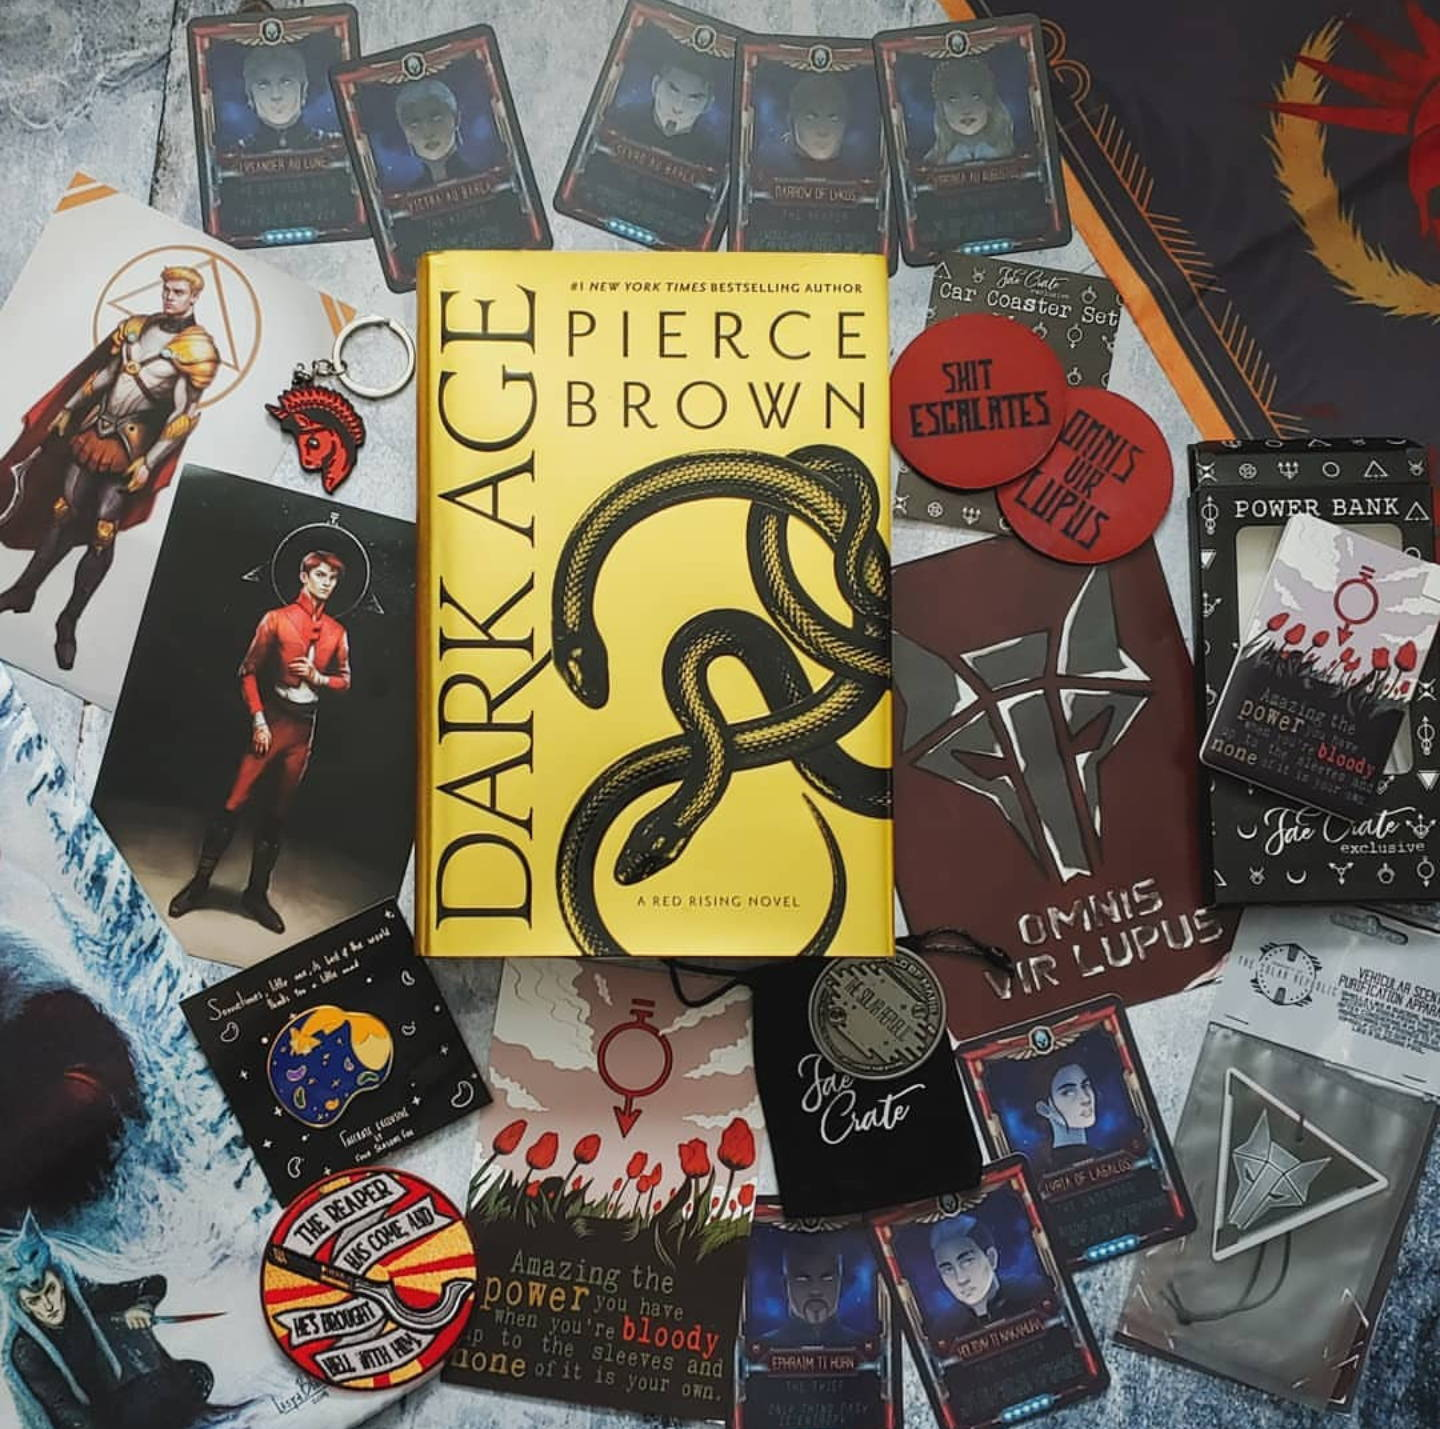 Dark Age Hangover Box includes Dark Age Hardcover by Pierce Brown, Unicorn Ares Enamel Keychain, Sophocles Enamel Pin, Character Cards, Collector's Coin, Howler's Air Freshener, Scythe Iron-On Patch, Satin Booksleeve, Car Coaster Set, Power Bank, and  red Darrow & Gold Darrow Book Stickers.